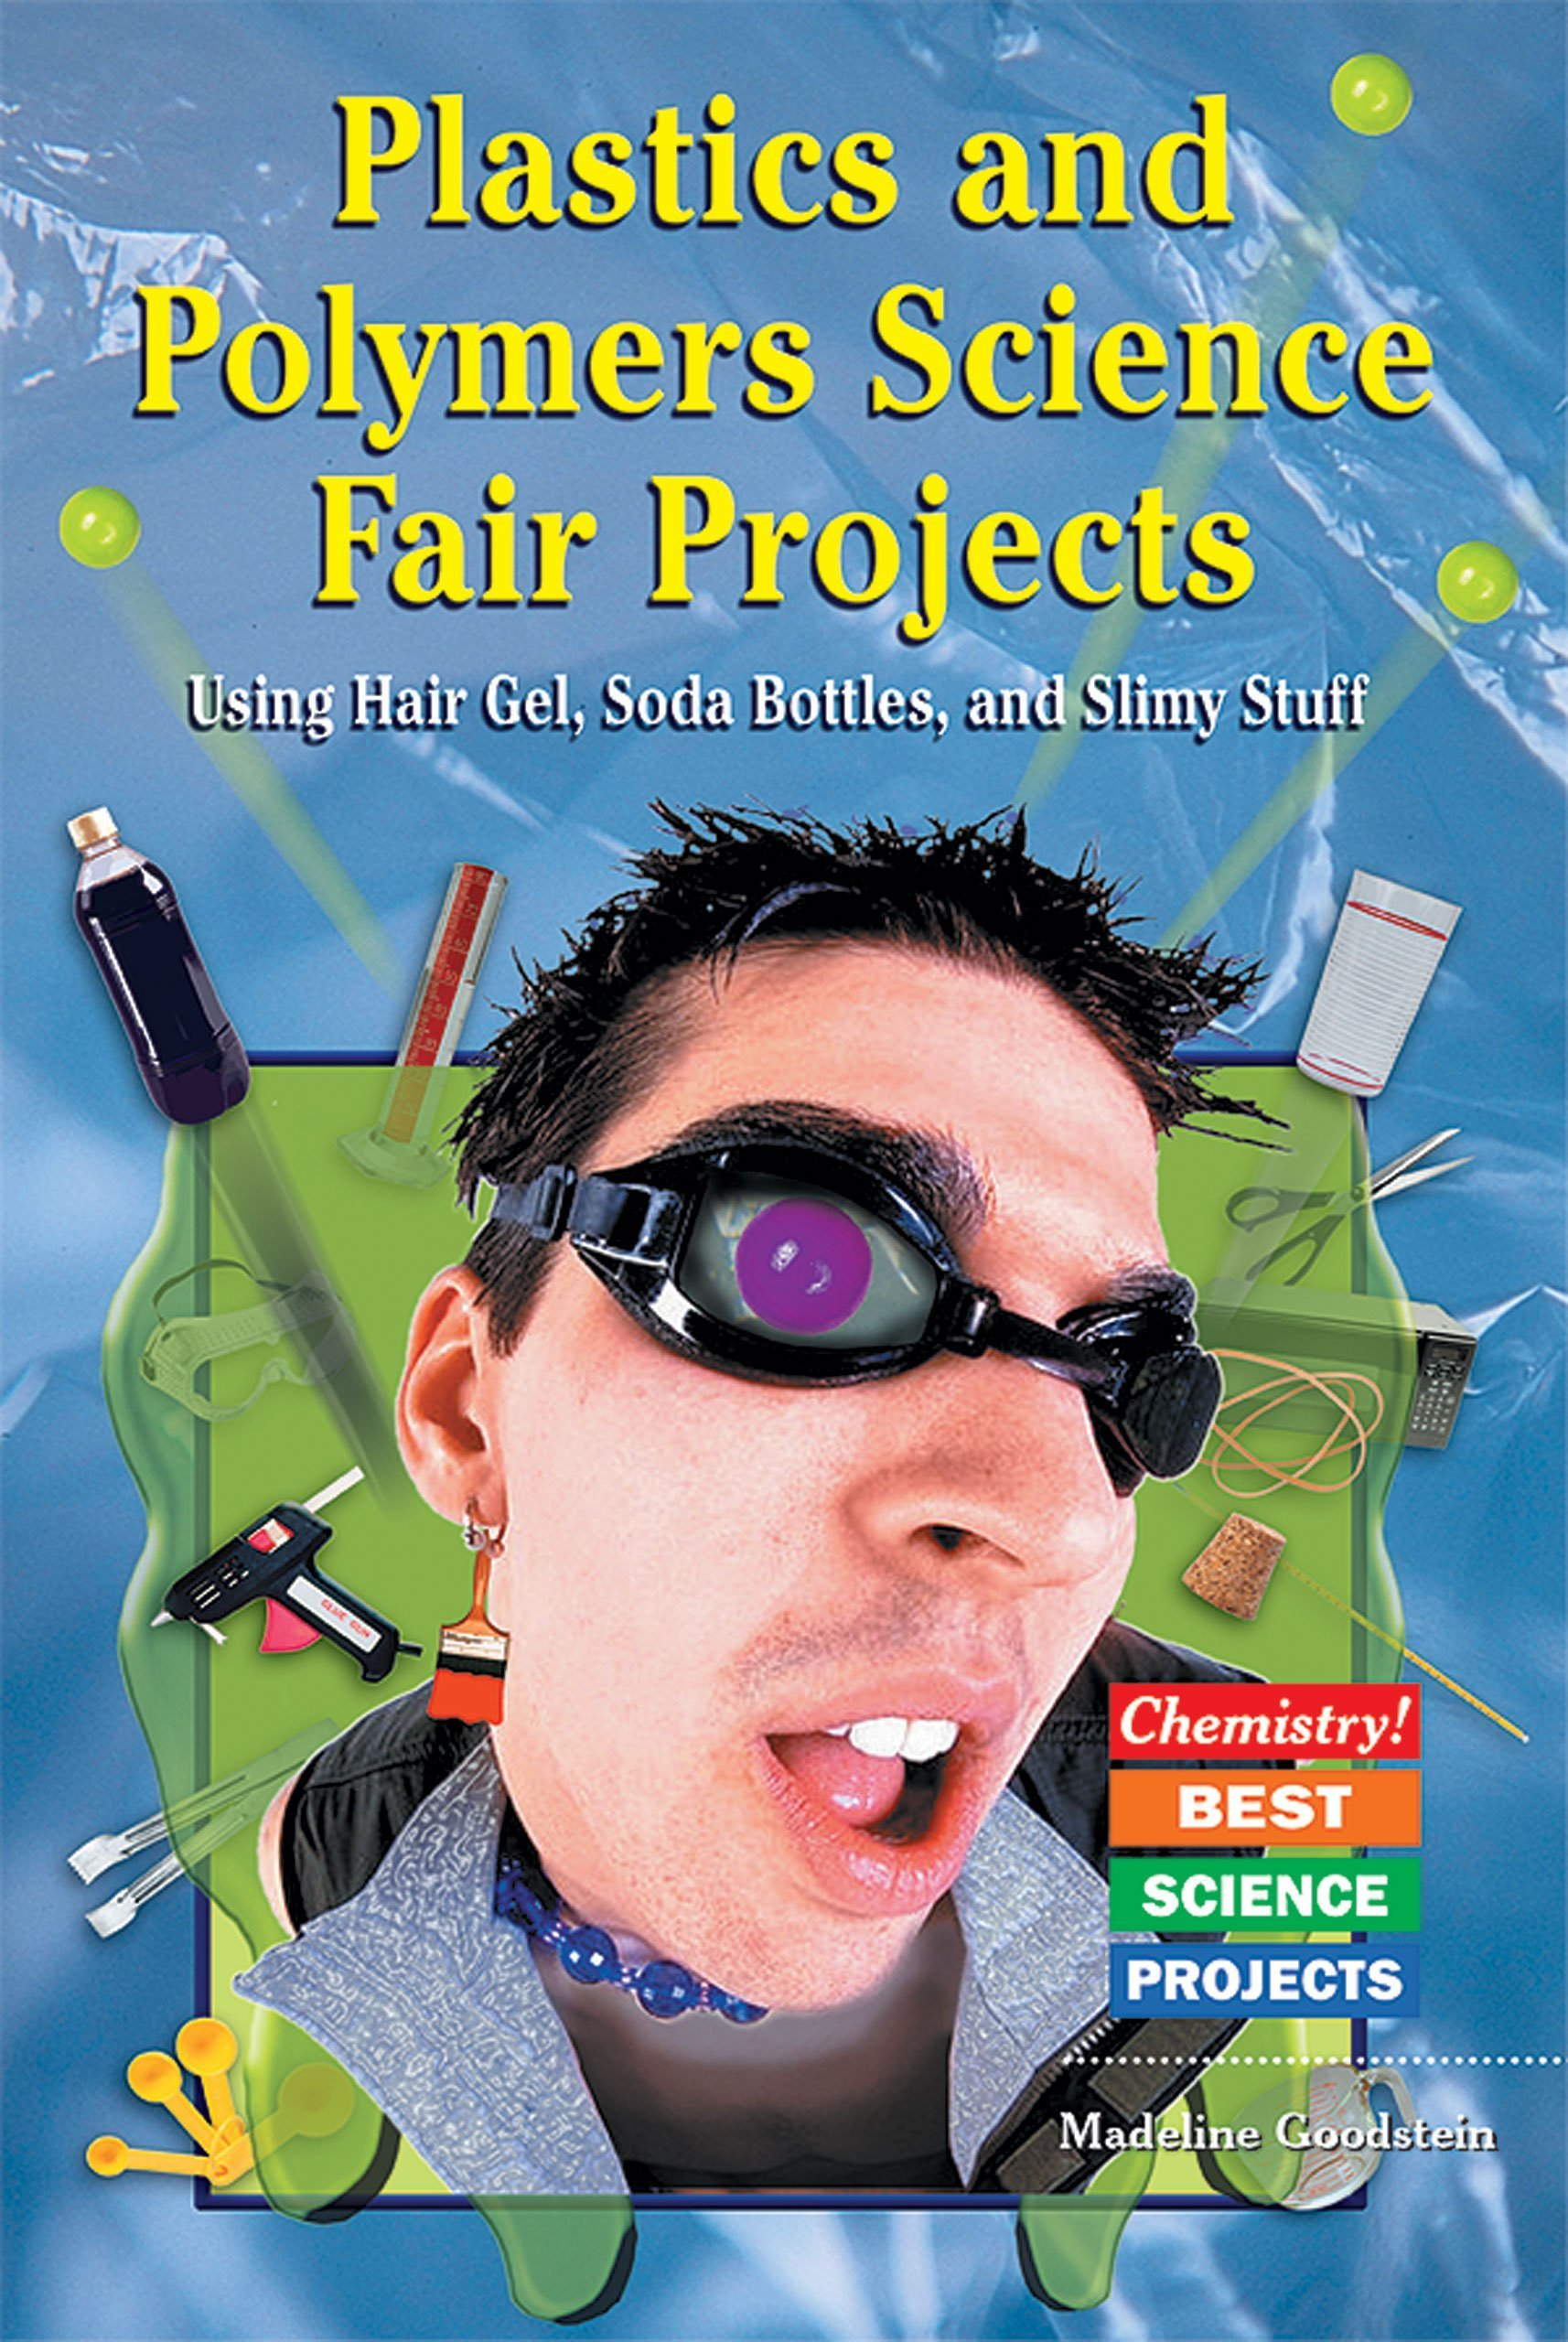 plastics and polymers science fair projects using hair gel soda plastics and polymers science fair projects using hair gel soda bottles and slimy stuff chemistry best science projects madeline p goodstein